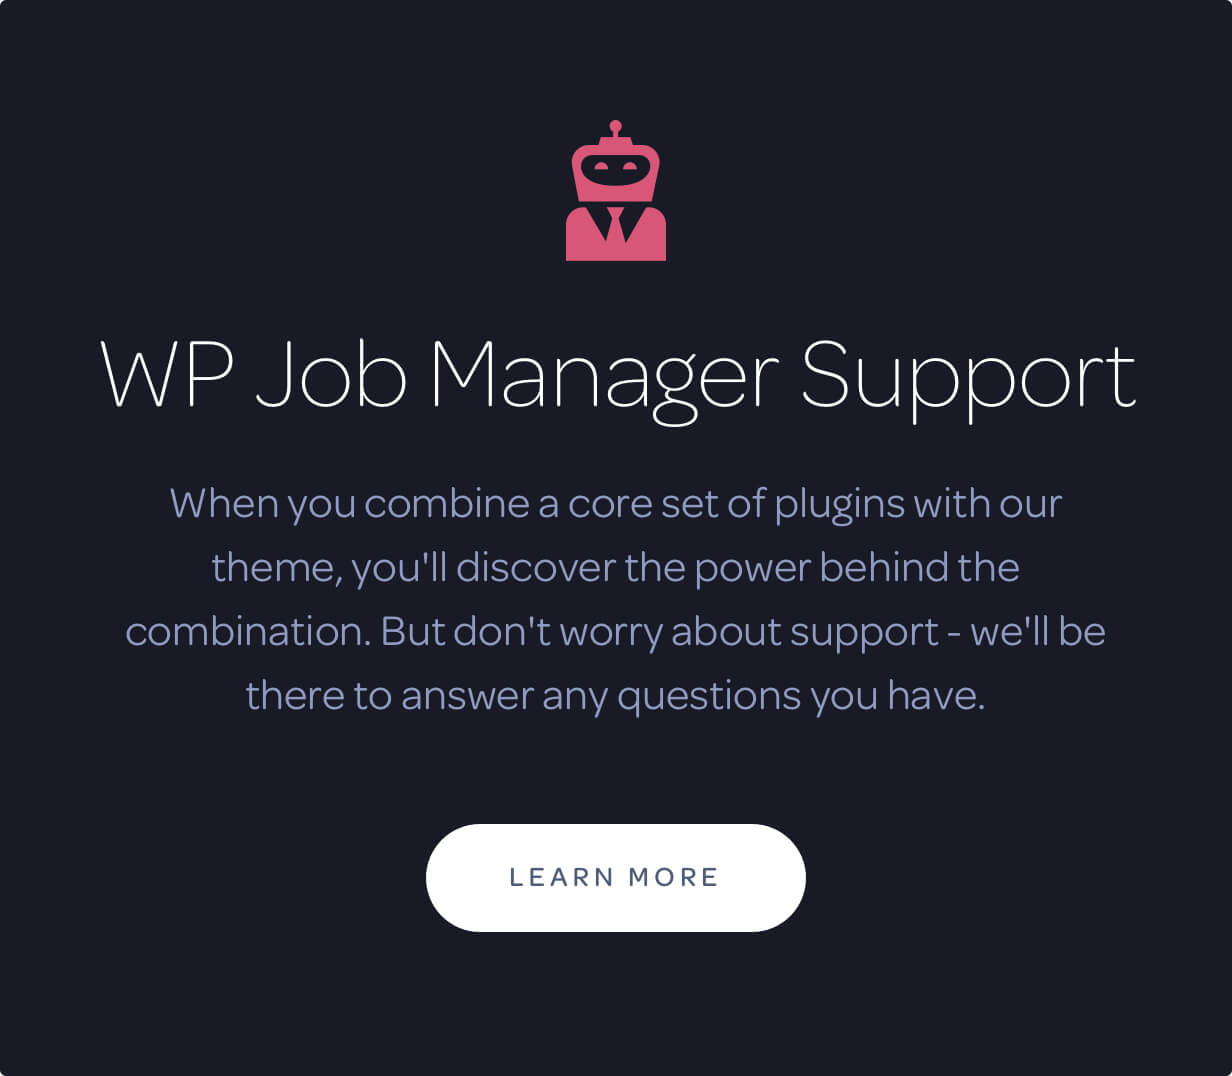 wp job manager - Jobify - Job Board WordPress Theme